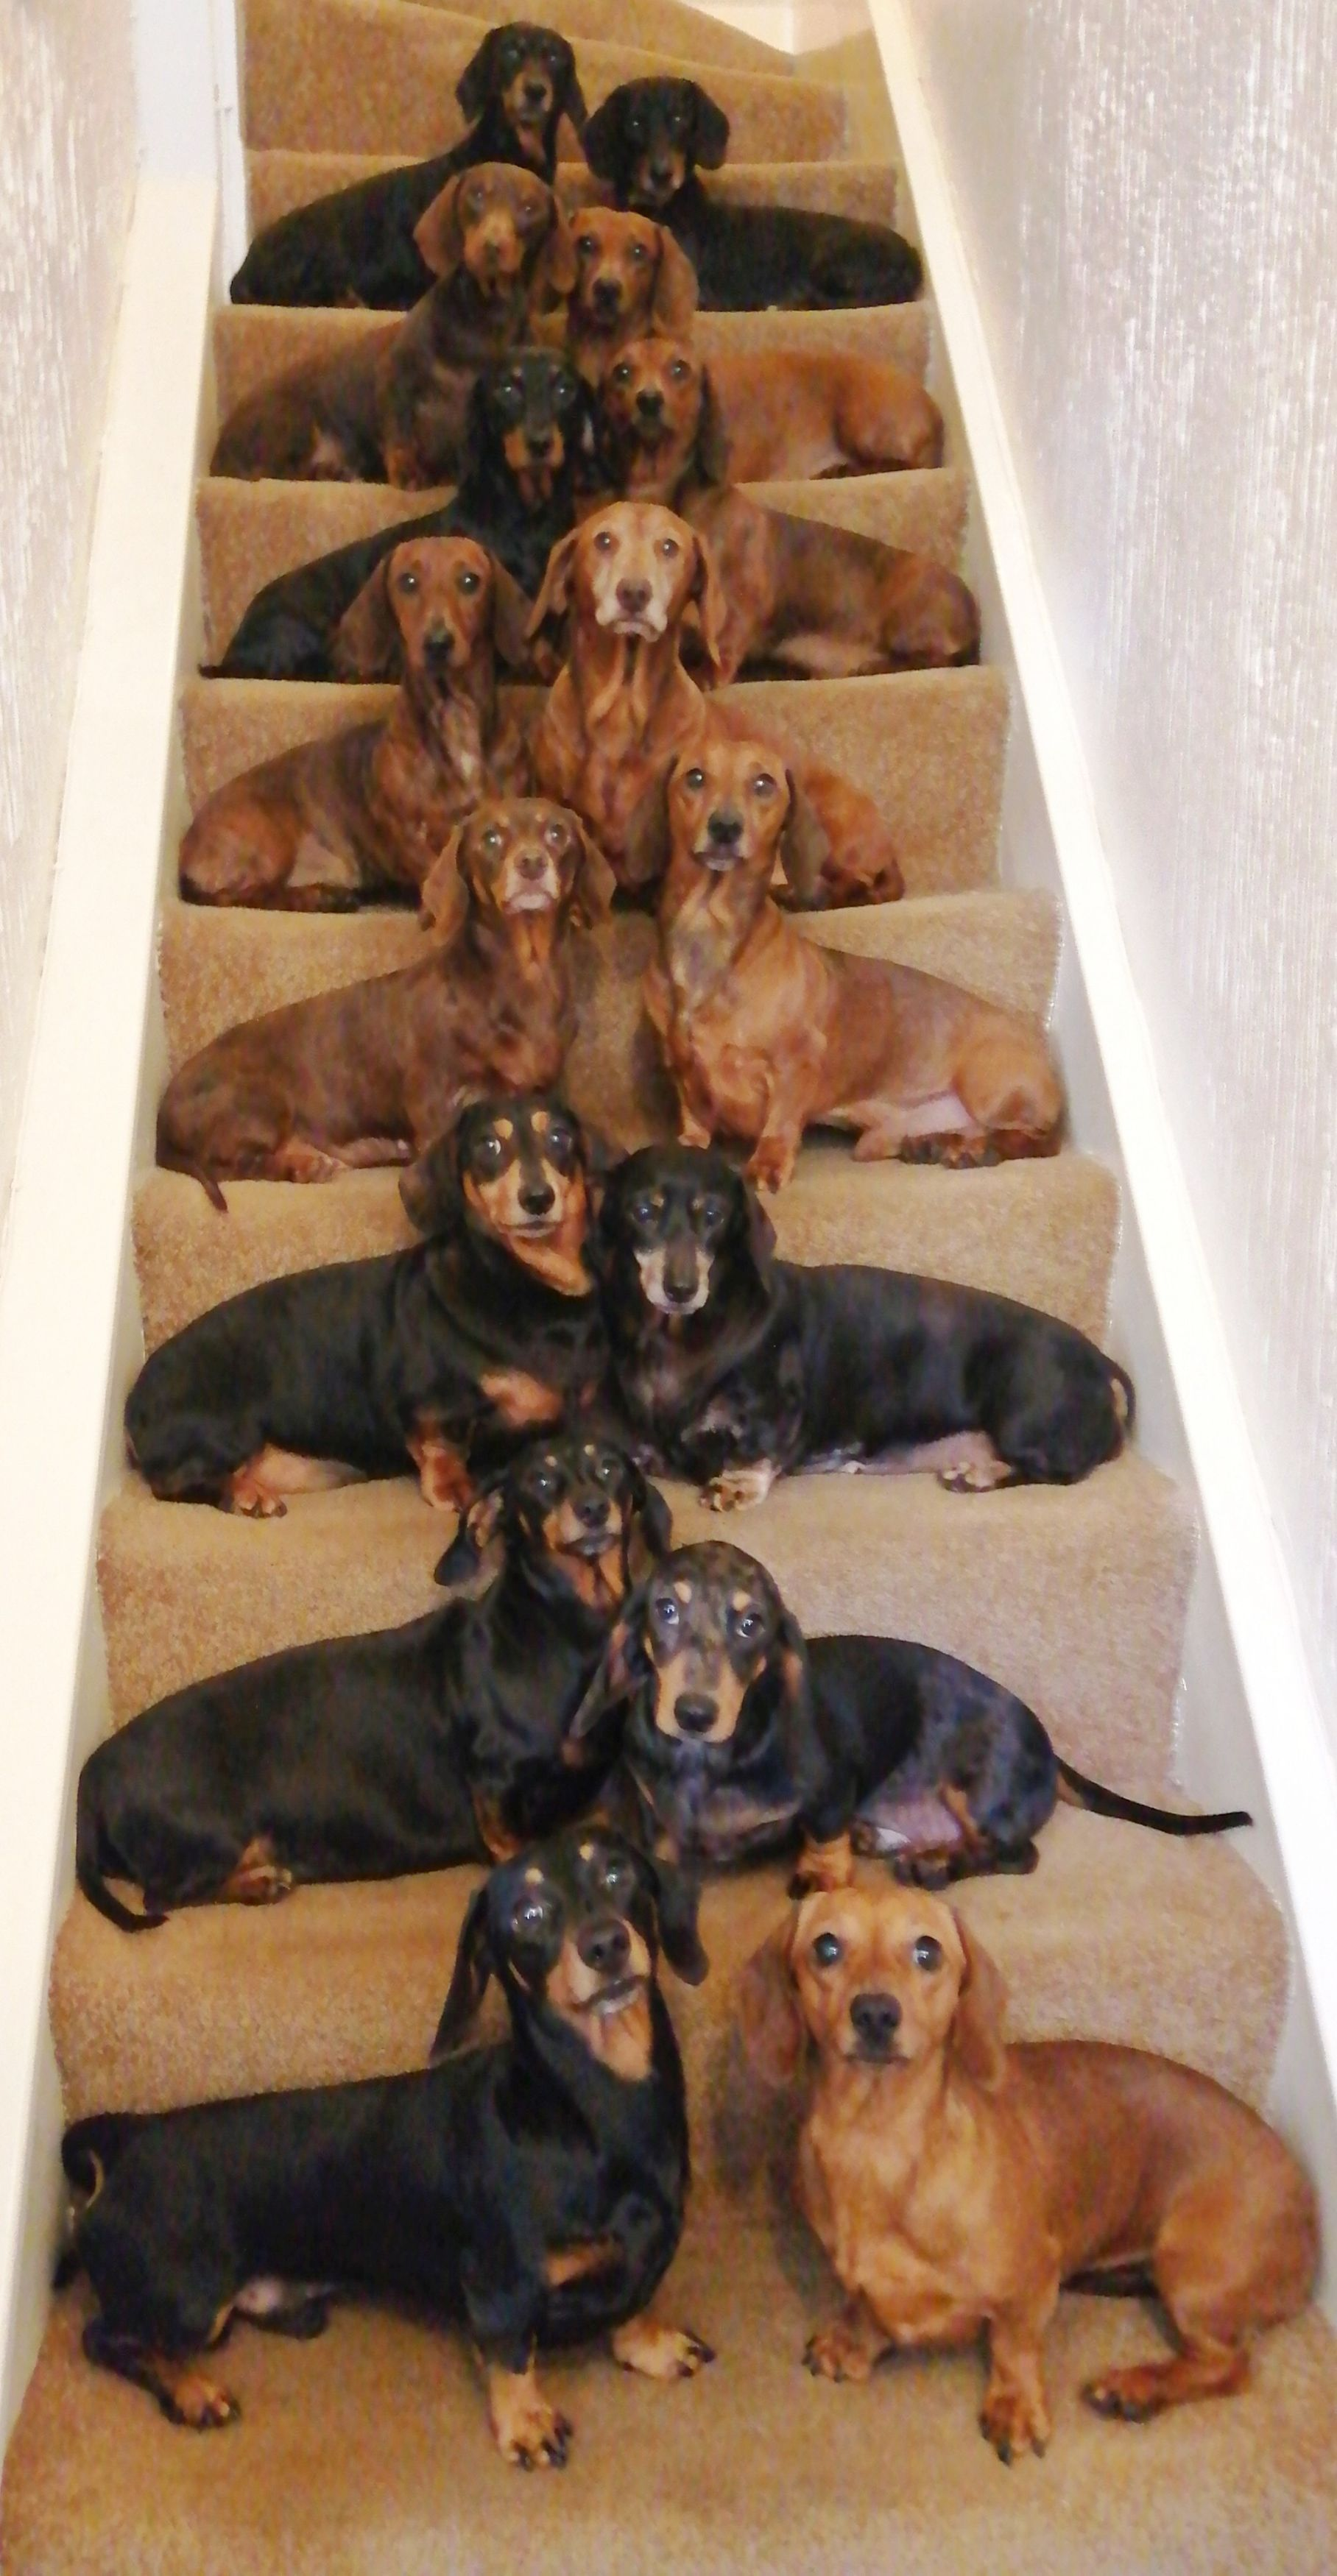 The 16 Dachshunds lined up for the snap. Credit: Kennedy News and Media